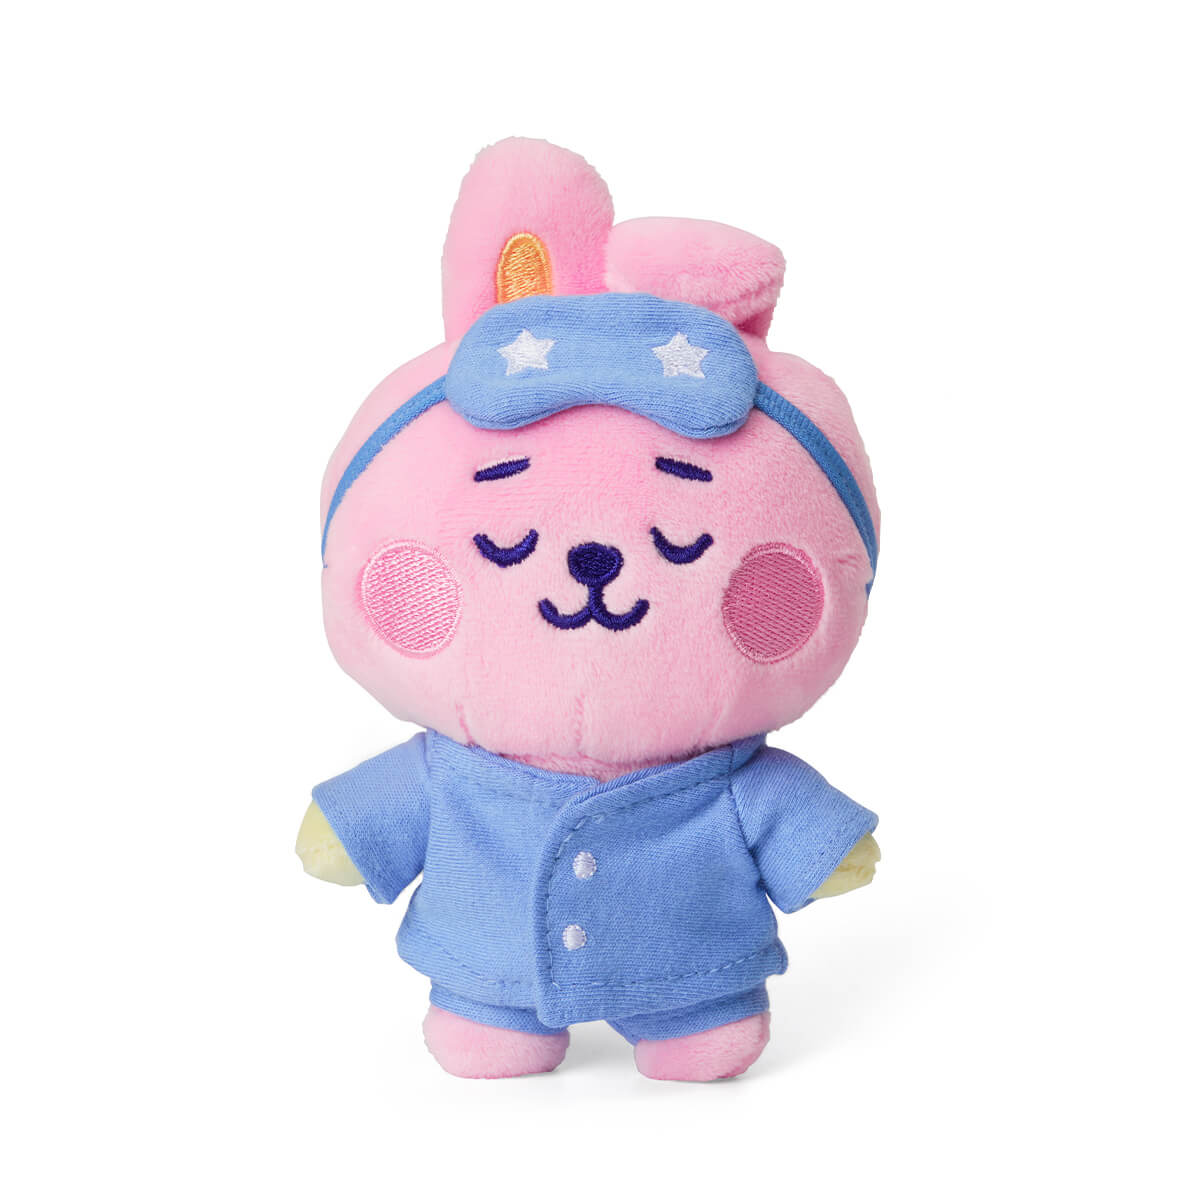 BT21 COOKY Dream of Baby Pajama Doll Set